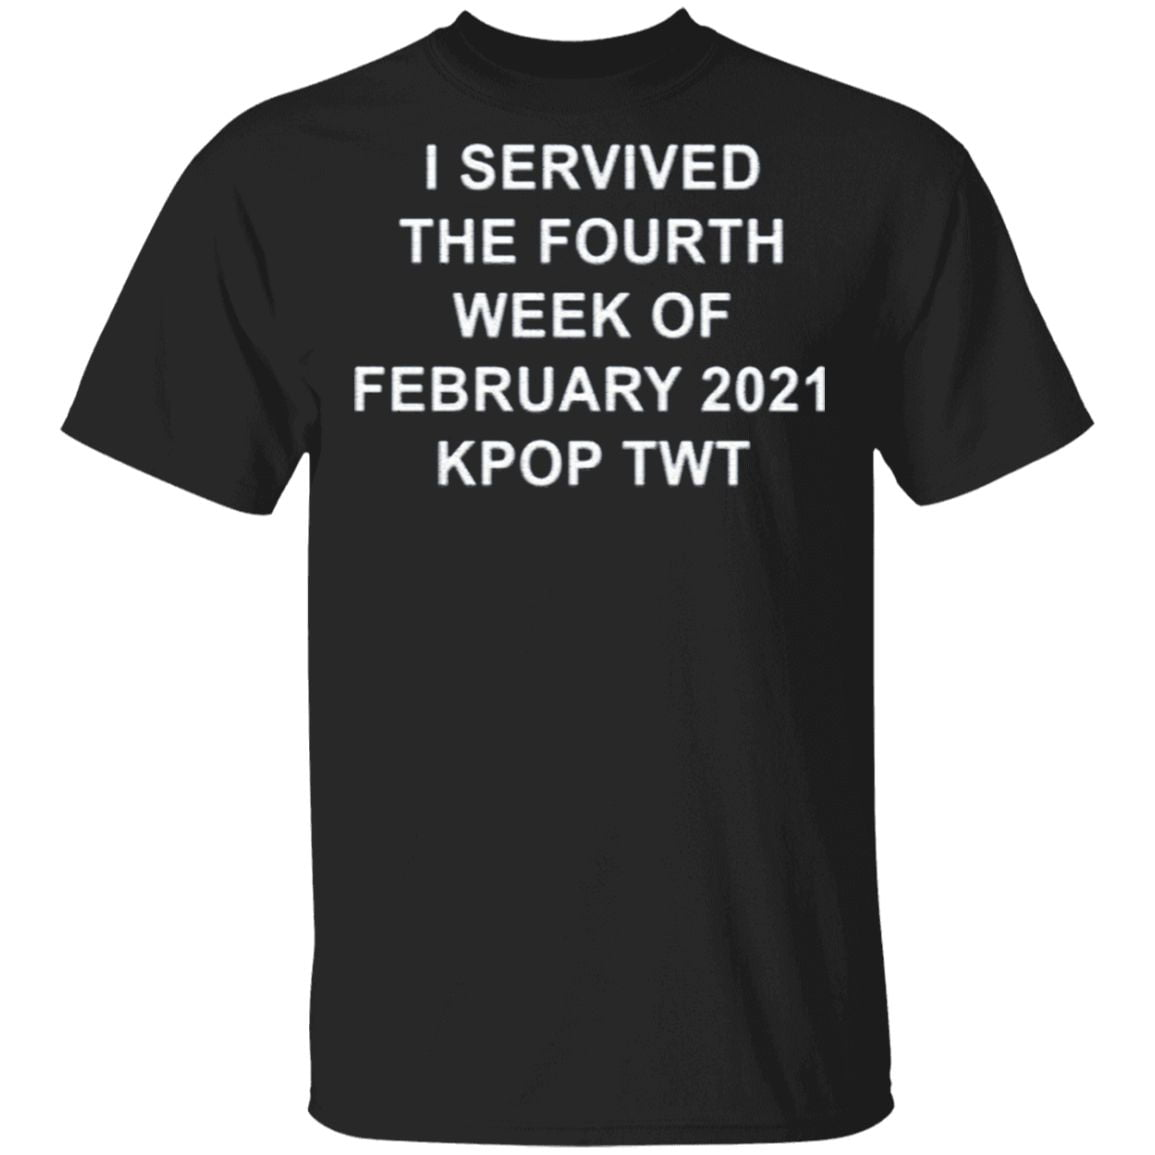 i servived the fourth week of february 2021 kpop twt t-shirt